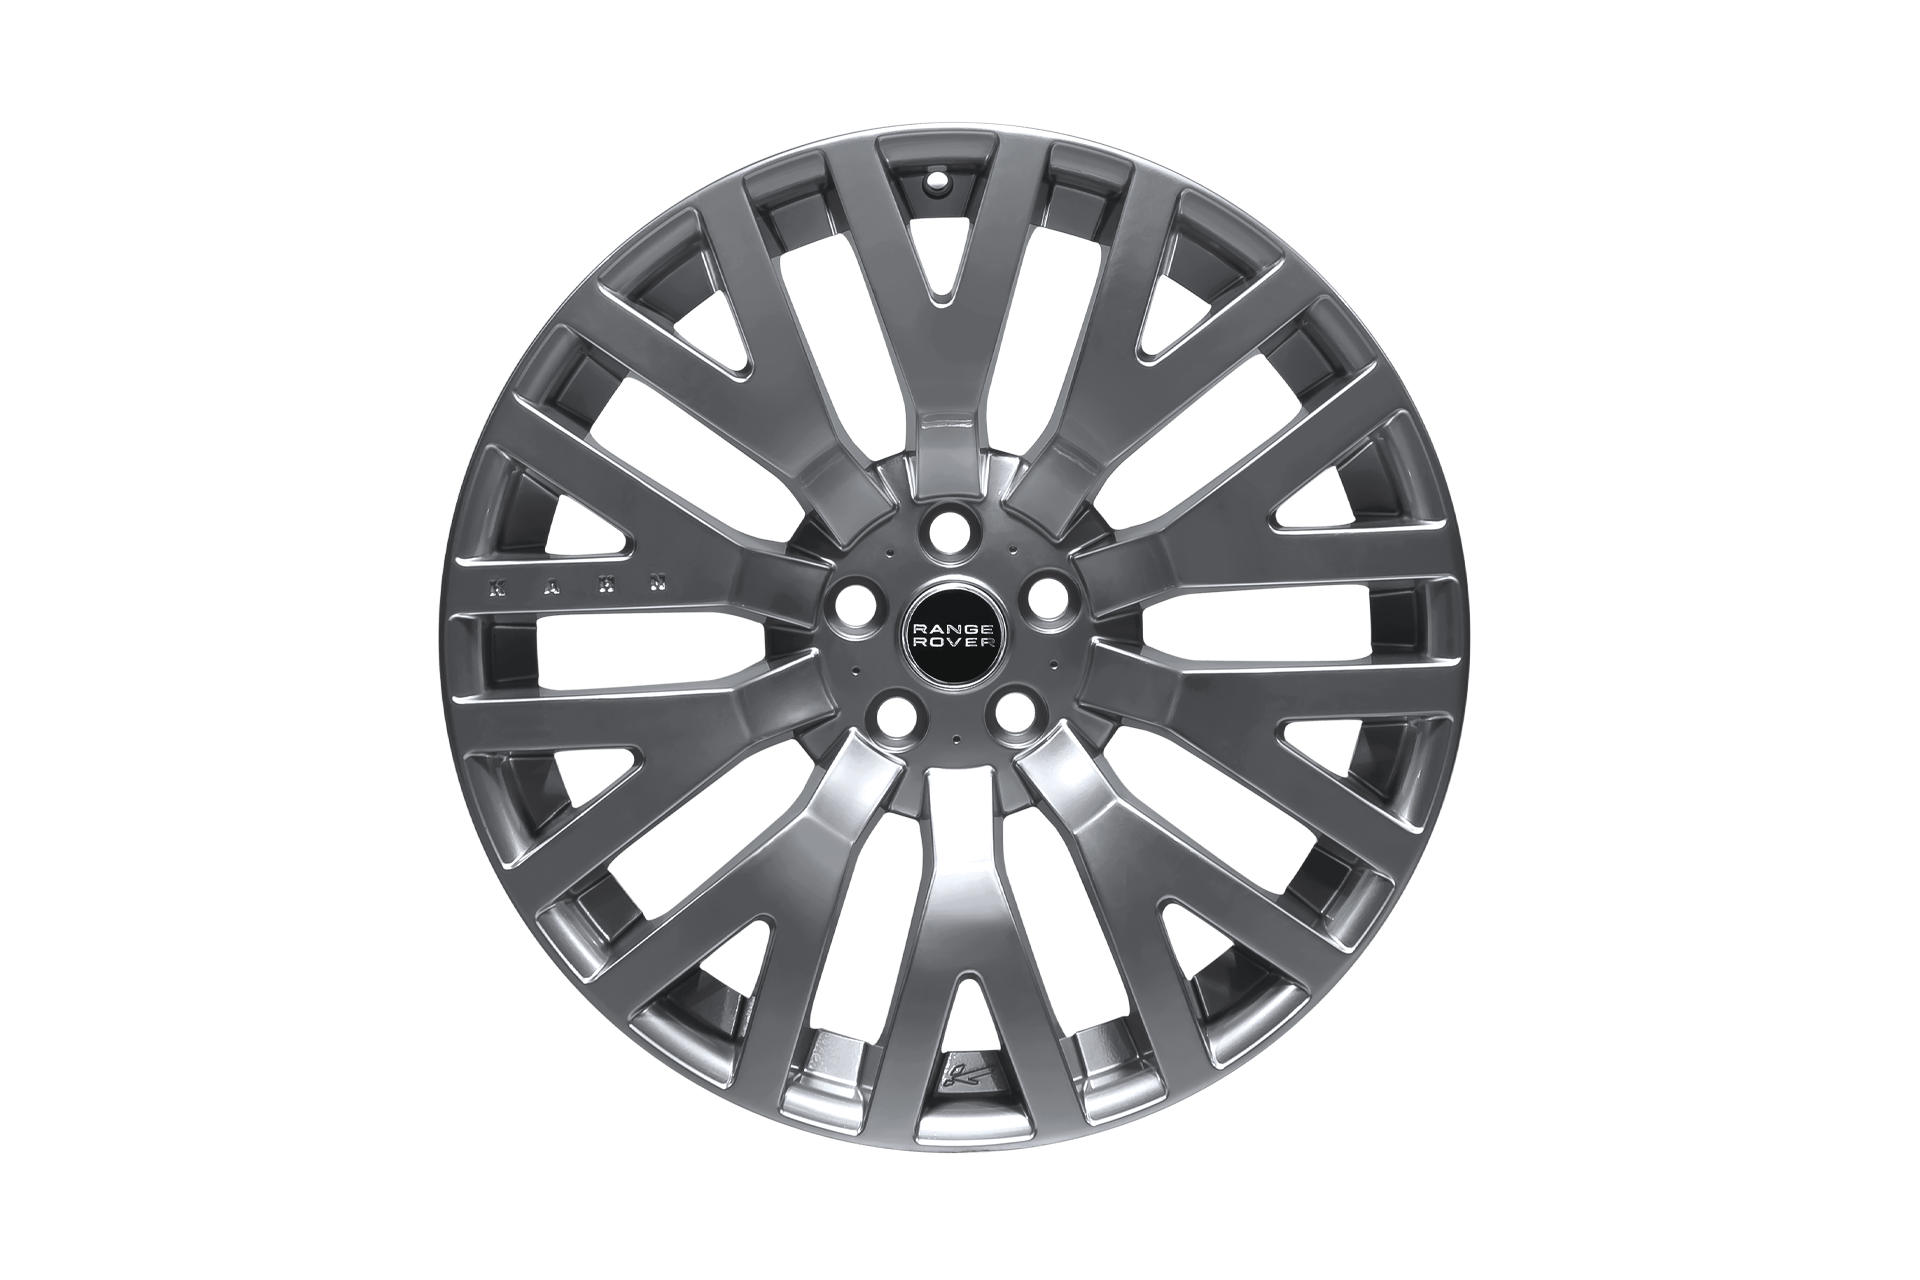 Range Rover Sport (2015-2018) Svr Rs Light Alloy Wheels by Kahn - Image 3174